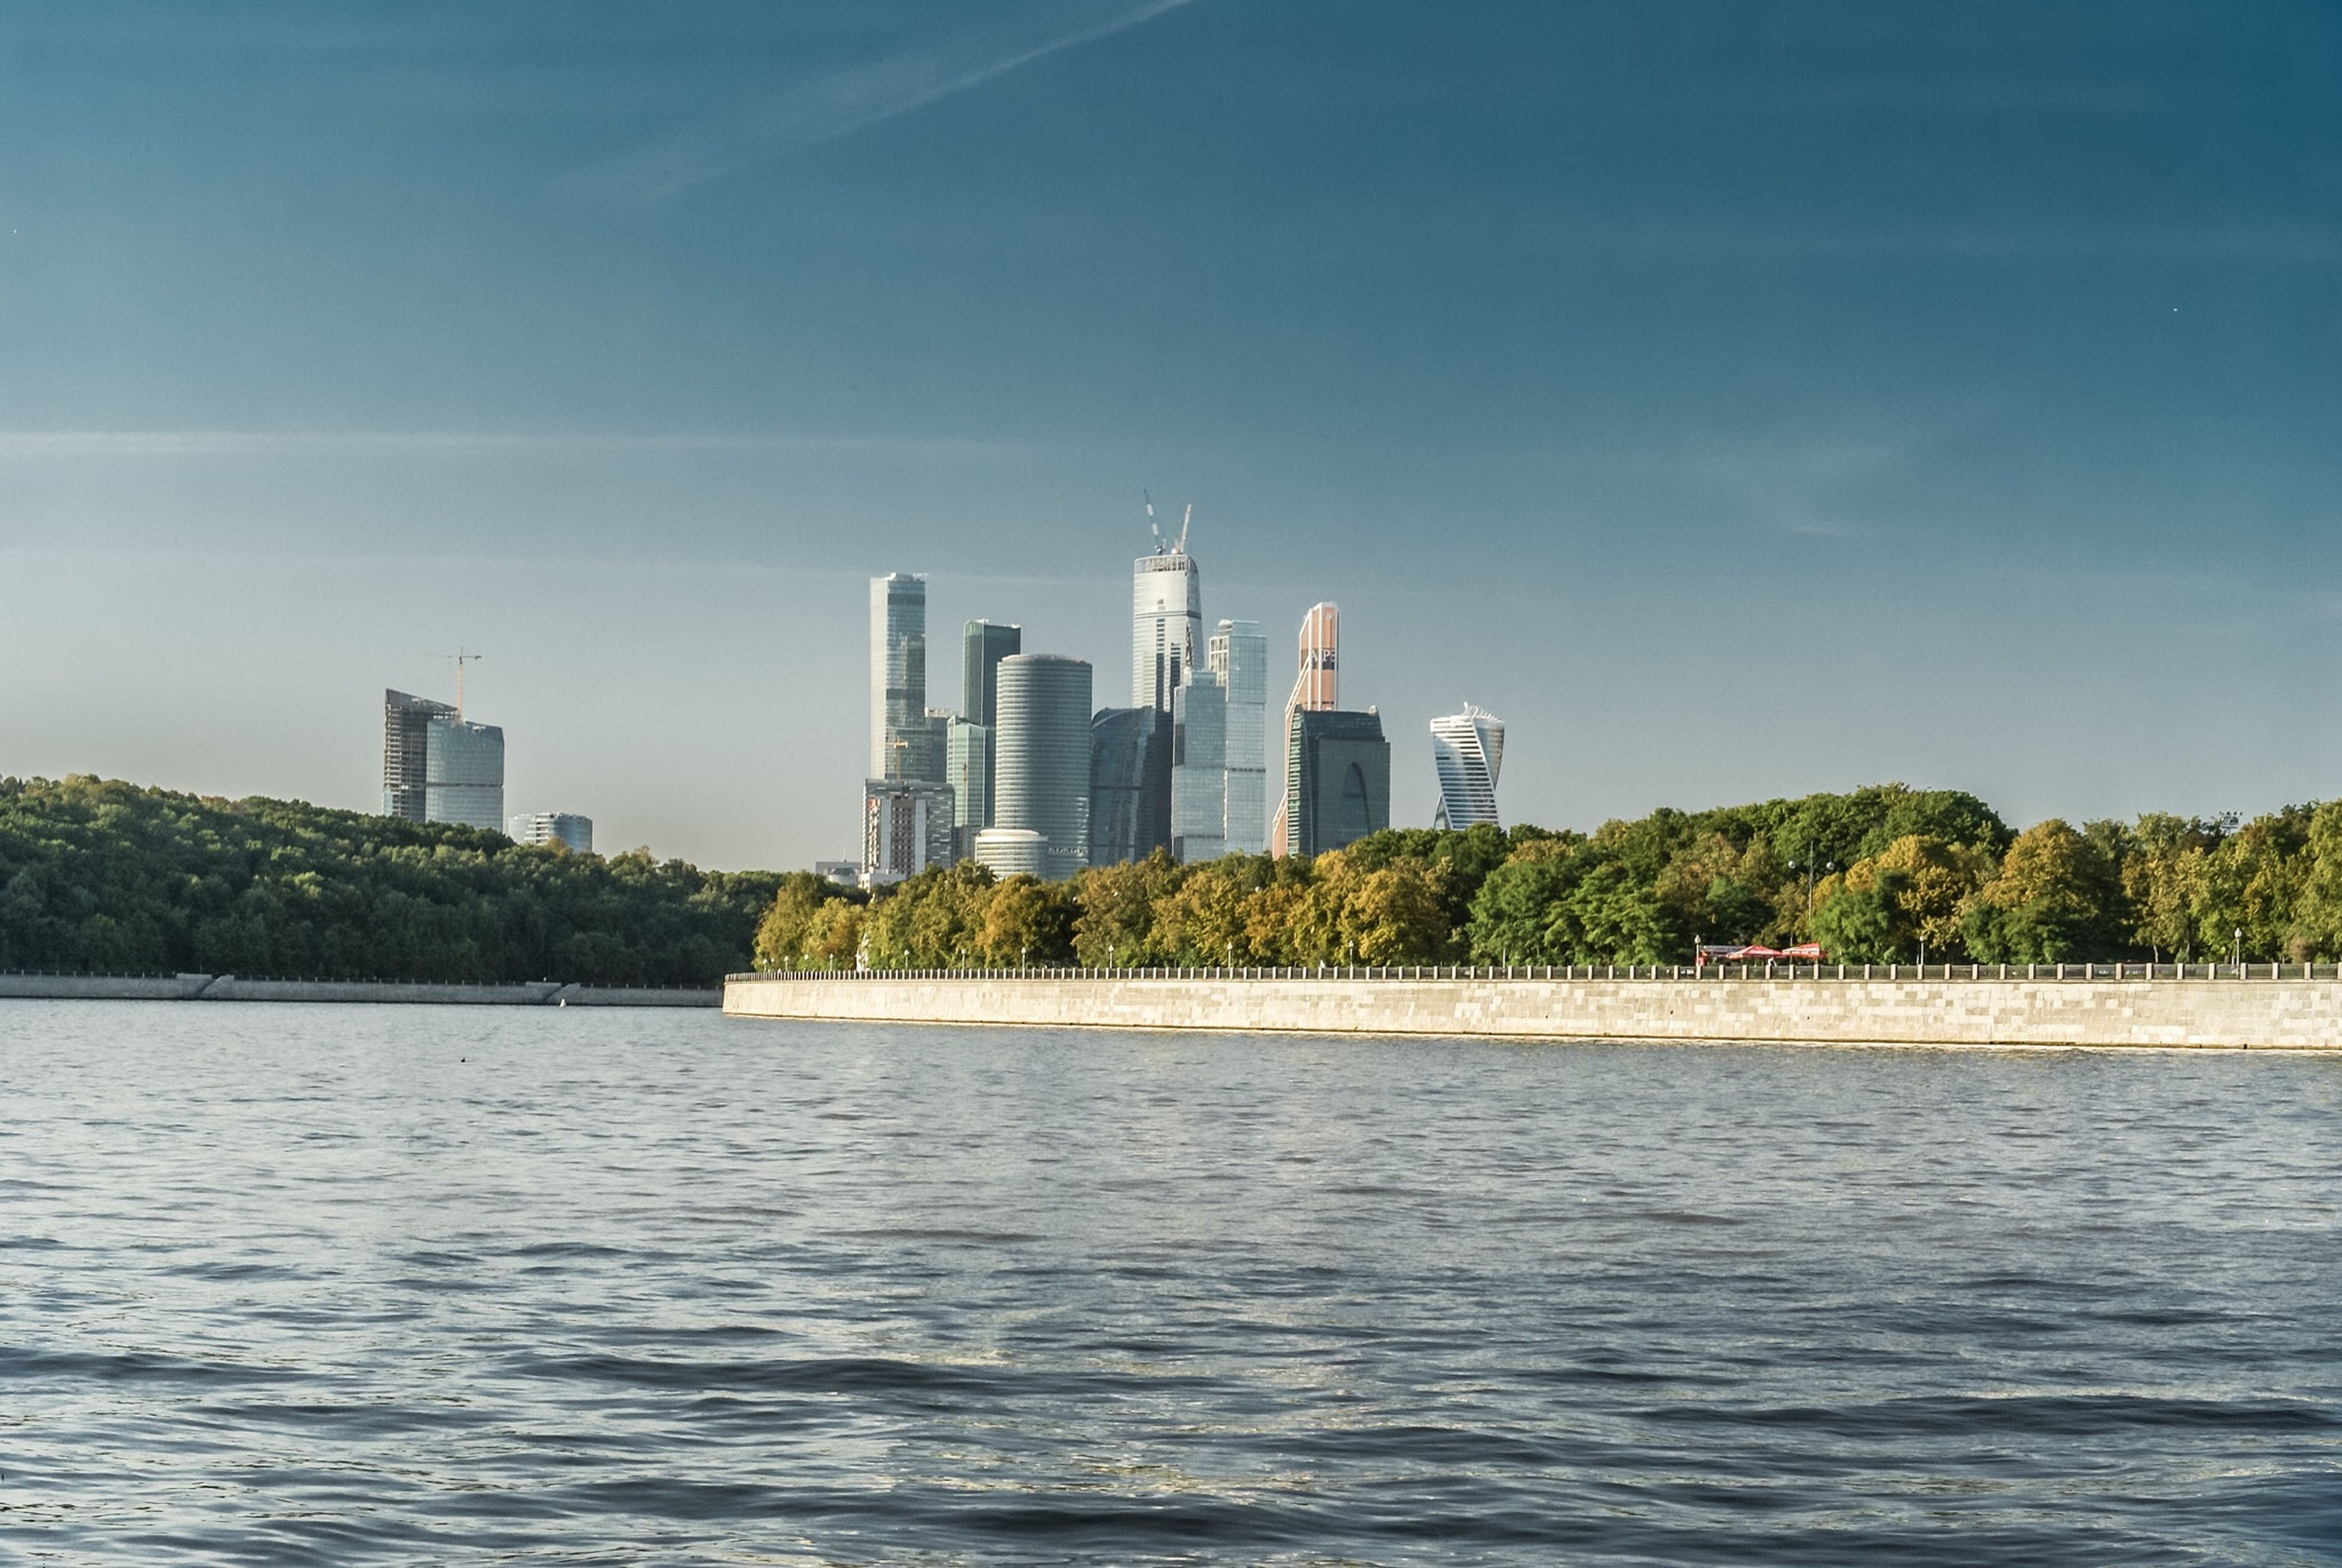 building exterior, architecture, built structure, skyscraper, city, water, tower, tall - high, waterfront, urban skyline, modern, cityscape, sky, office building, river, financial district, tree, blue, travel destinations, skyline